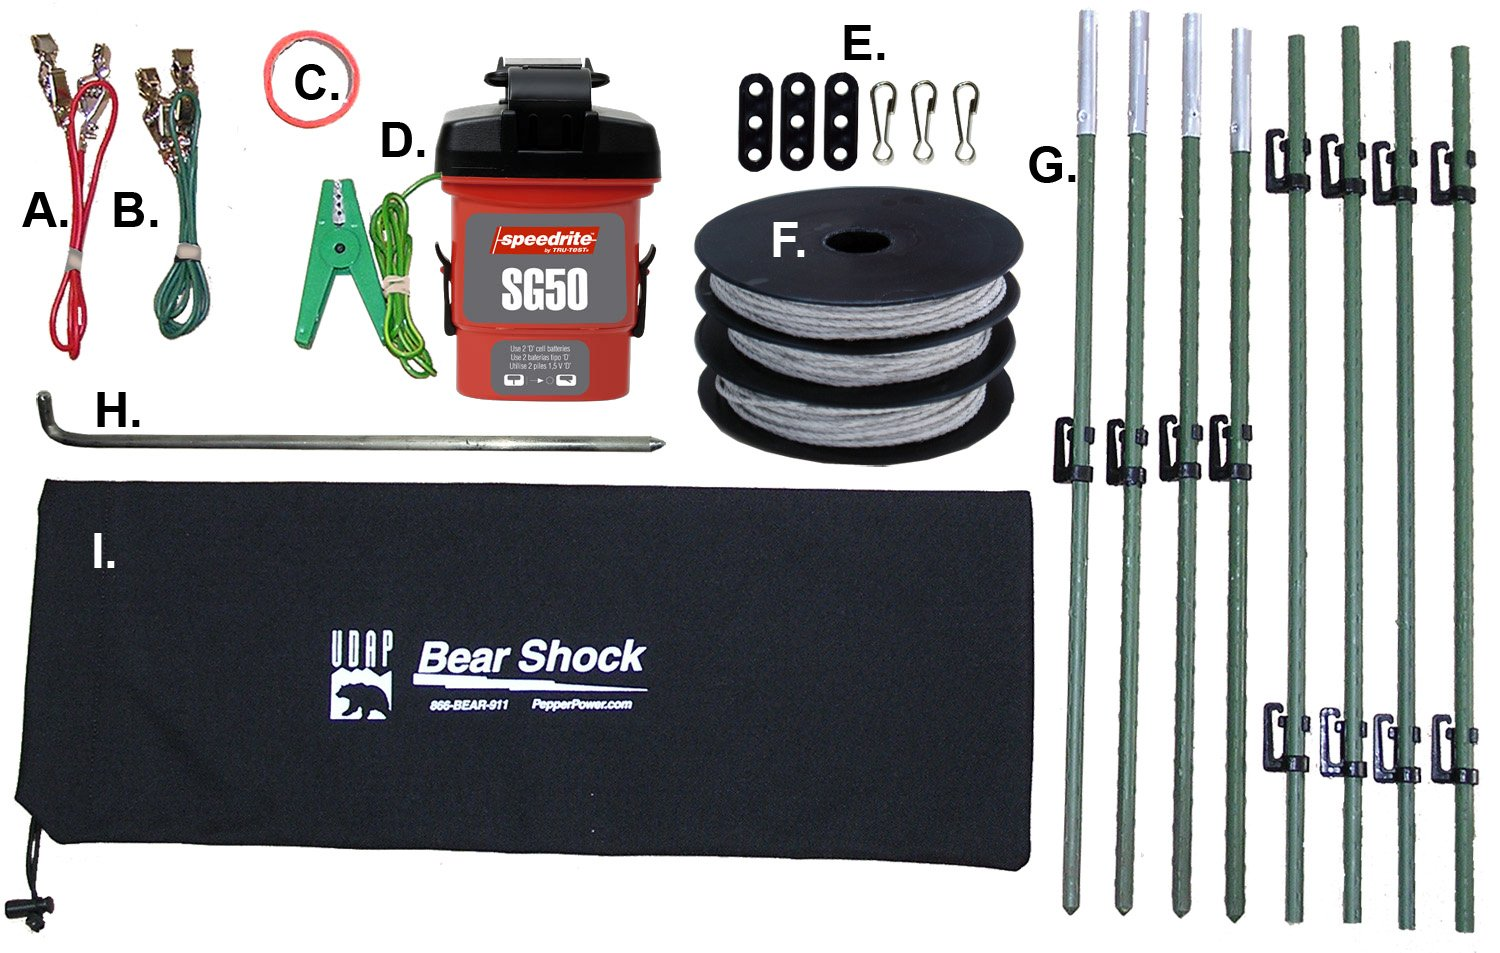 Amazon.com : Udap BEF Bear Shock Electric Fence : Bear Protection ...